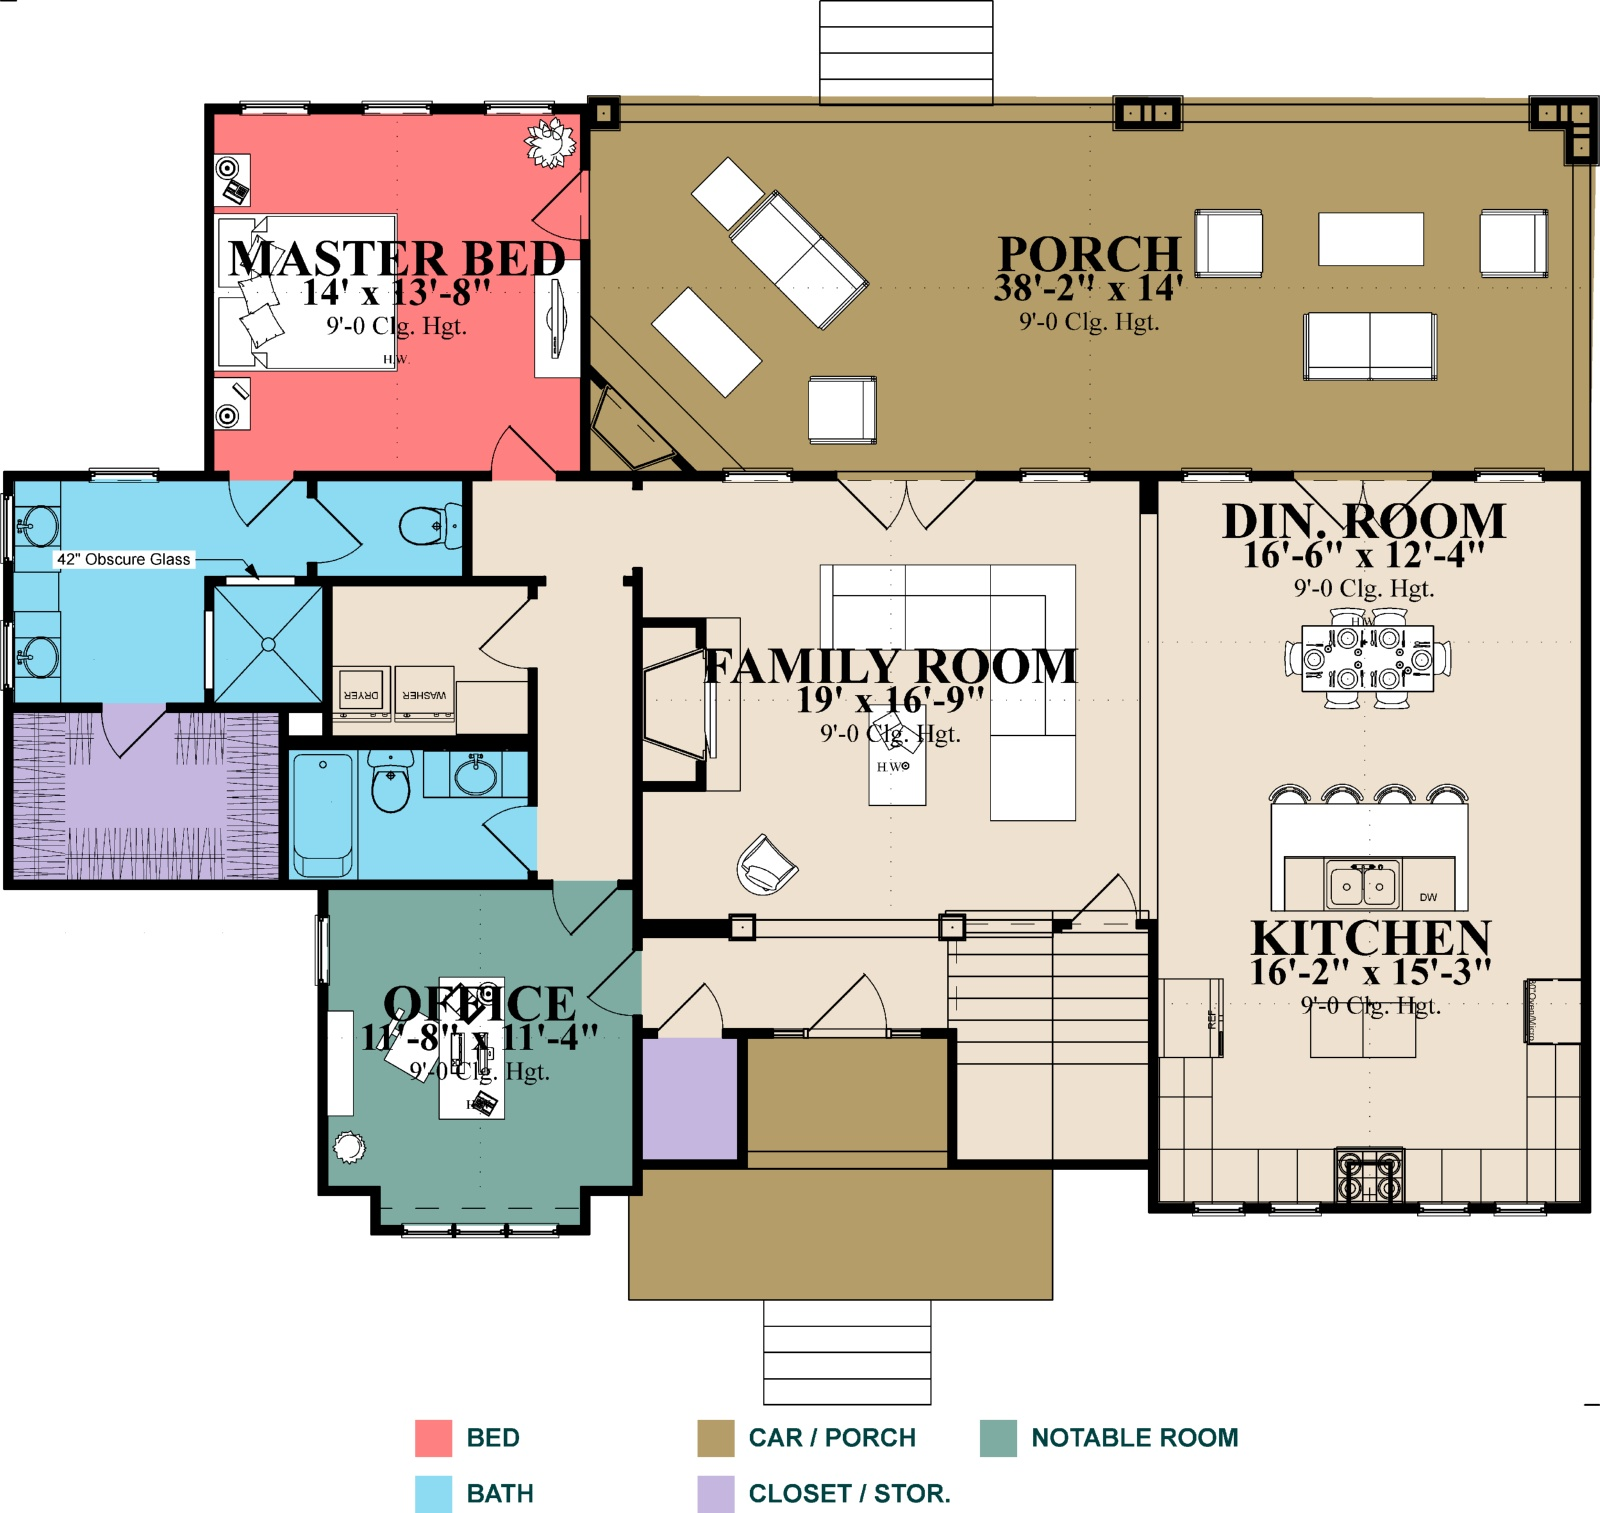 Home Plan Search, House Plans, Stock Plans Home Plans Colonial Cl Html on colonial reproduction homes, colonial house, historic building plans, colonial remodeling, colonial homes interiors, house plans, colonial revival homes, colonial construction, colonial flooring, colonial hardware, colonial style, colonial windows, colonial bungalow, colonial prefab homes, colonial real estate, colonial craftsman homes, colonial homes before and afters, colonial art, colonial insurance, colonial dream homes,